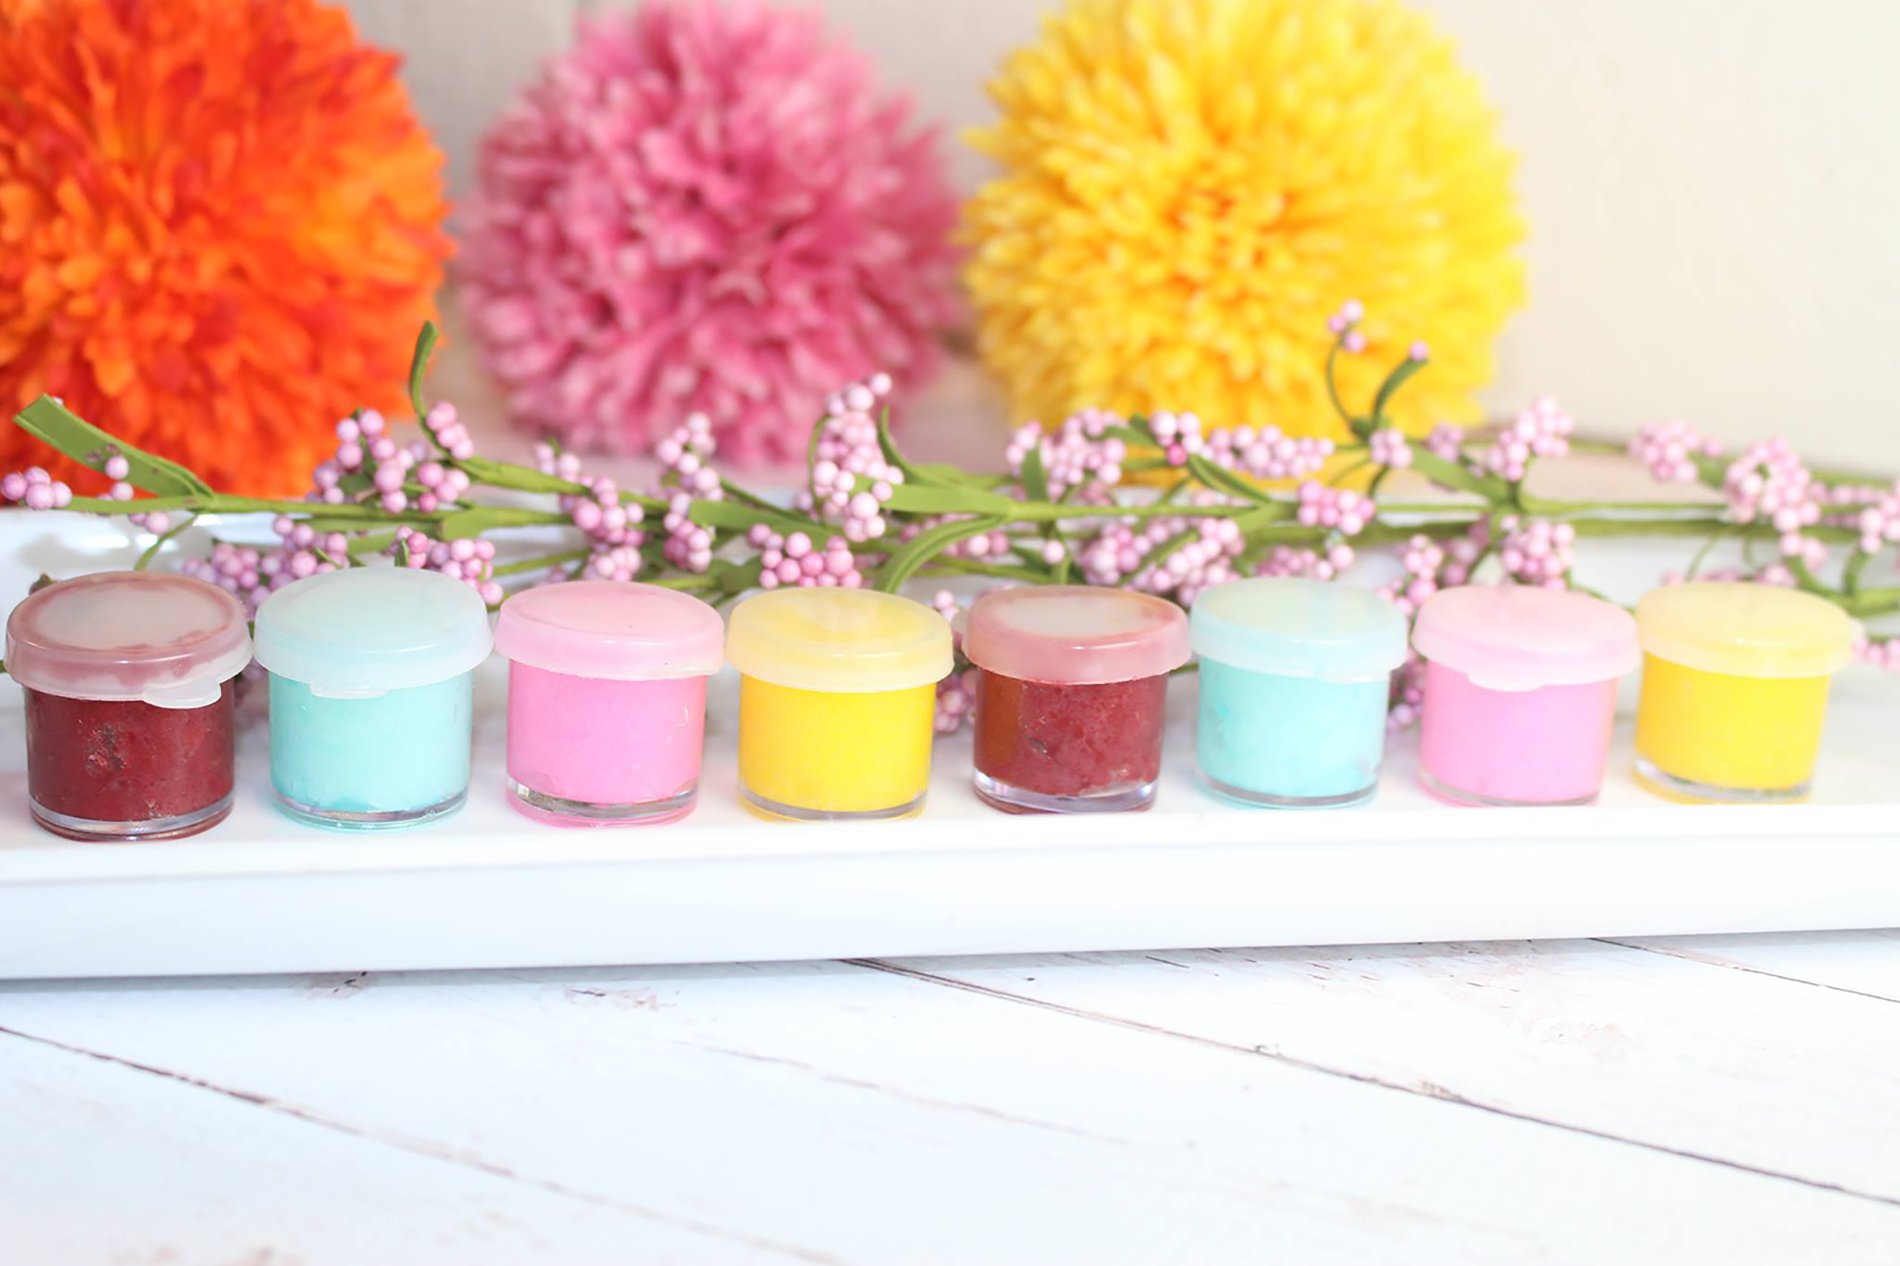 Quick and Easy 5 Minute DIY Lip Balm